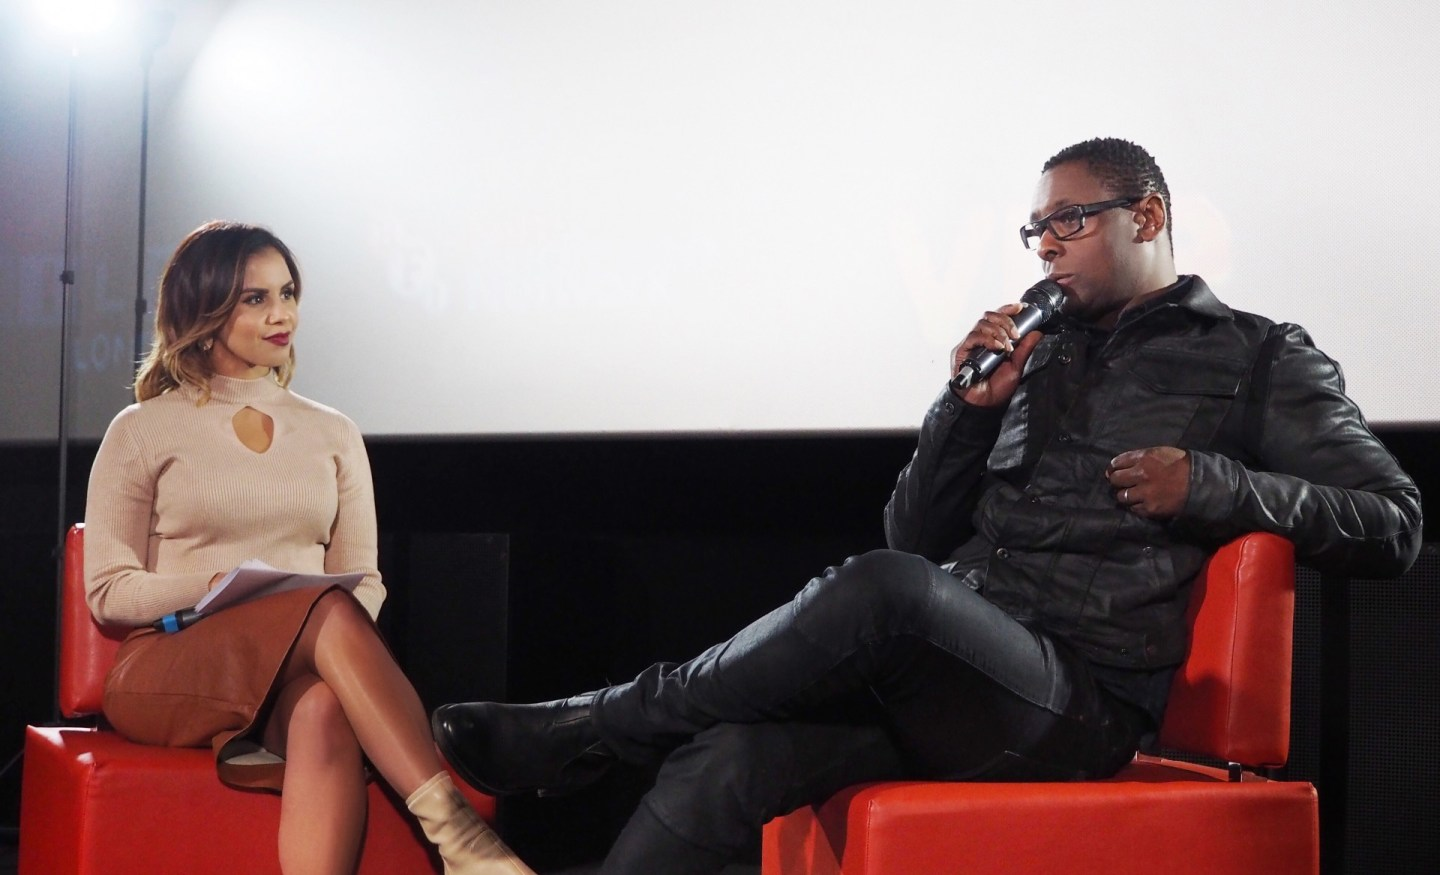 Shanie Interviews Hollywood Actor David Harewood for 'Your Cinema'